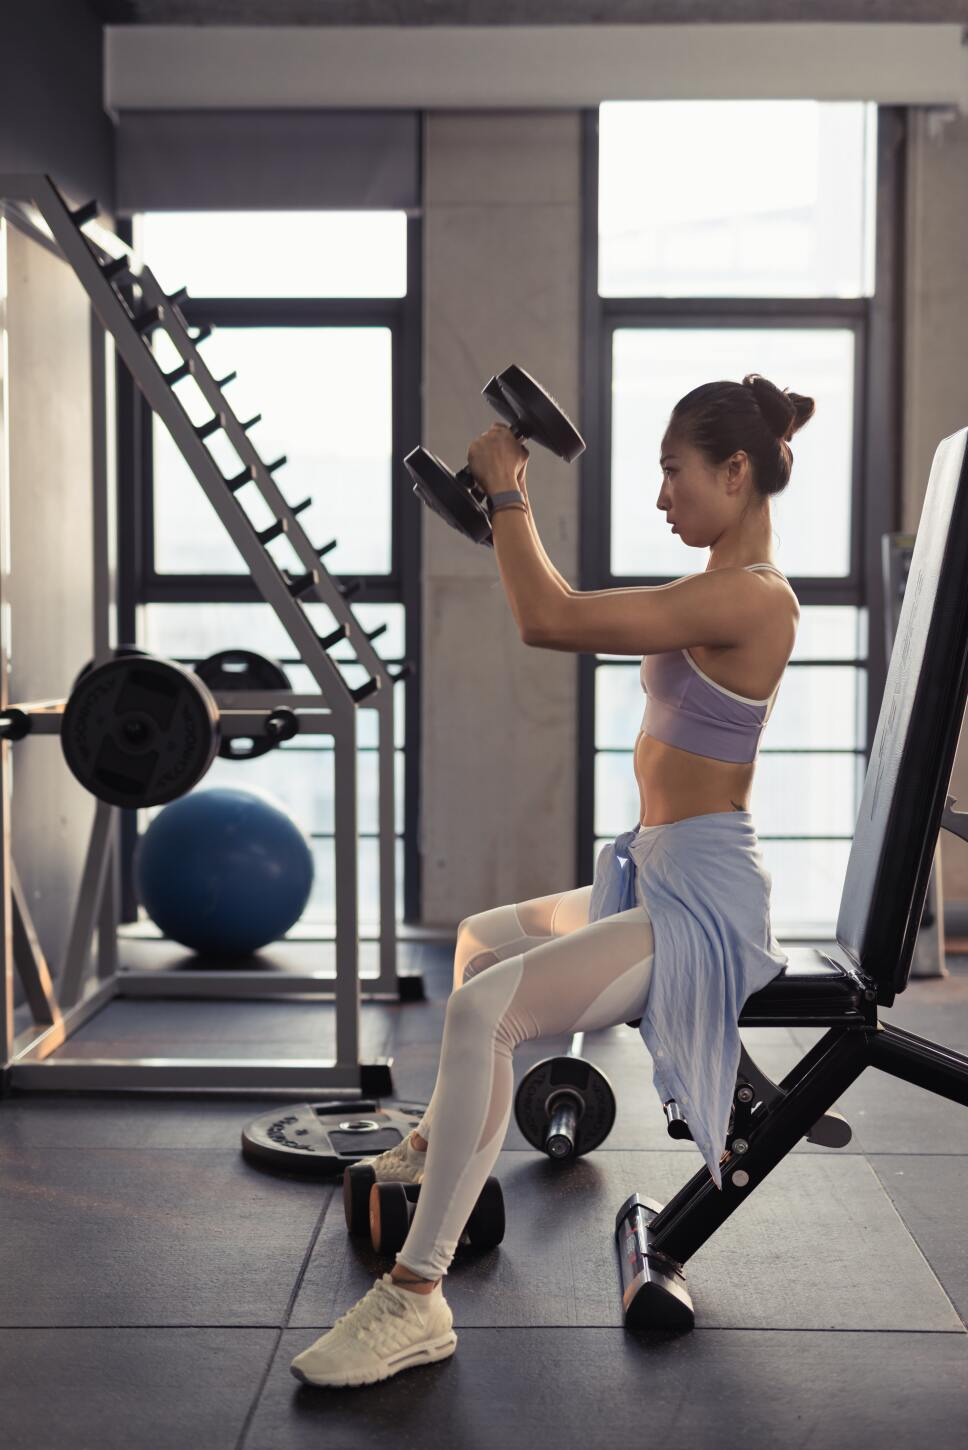 photo-of-woman-sitting-and-raising-dumbbells-2475875.jpg